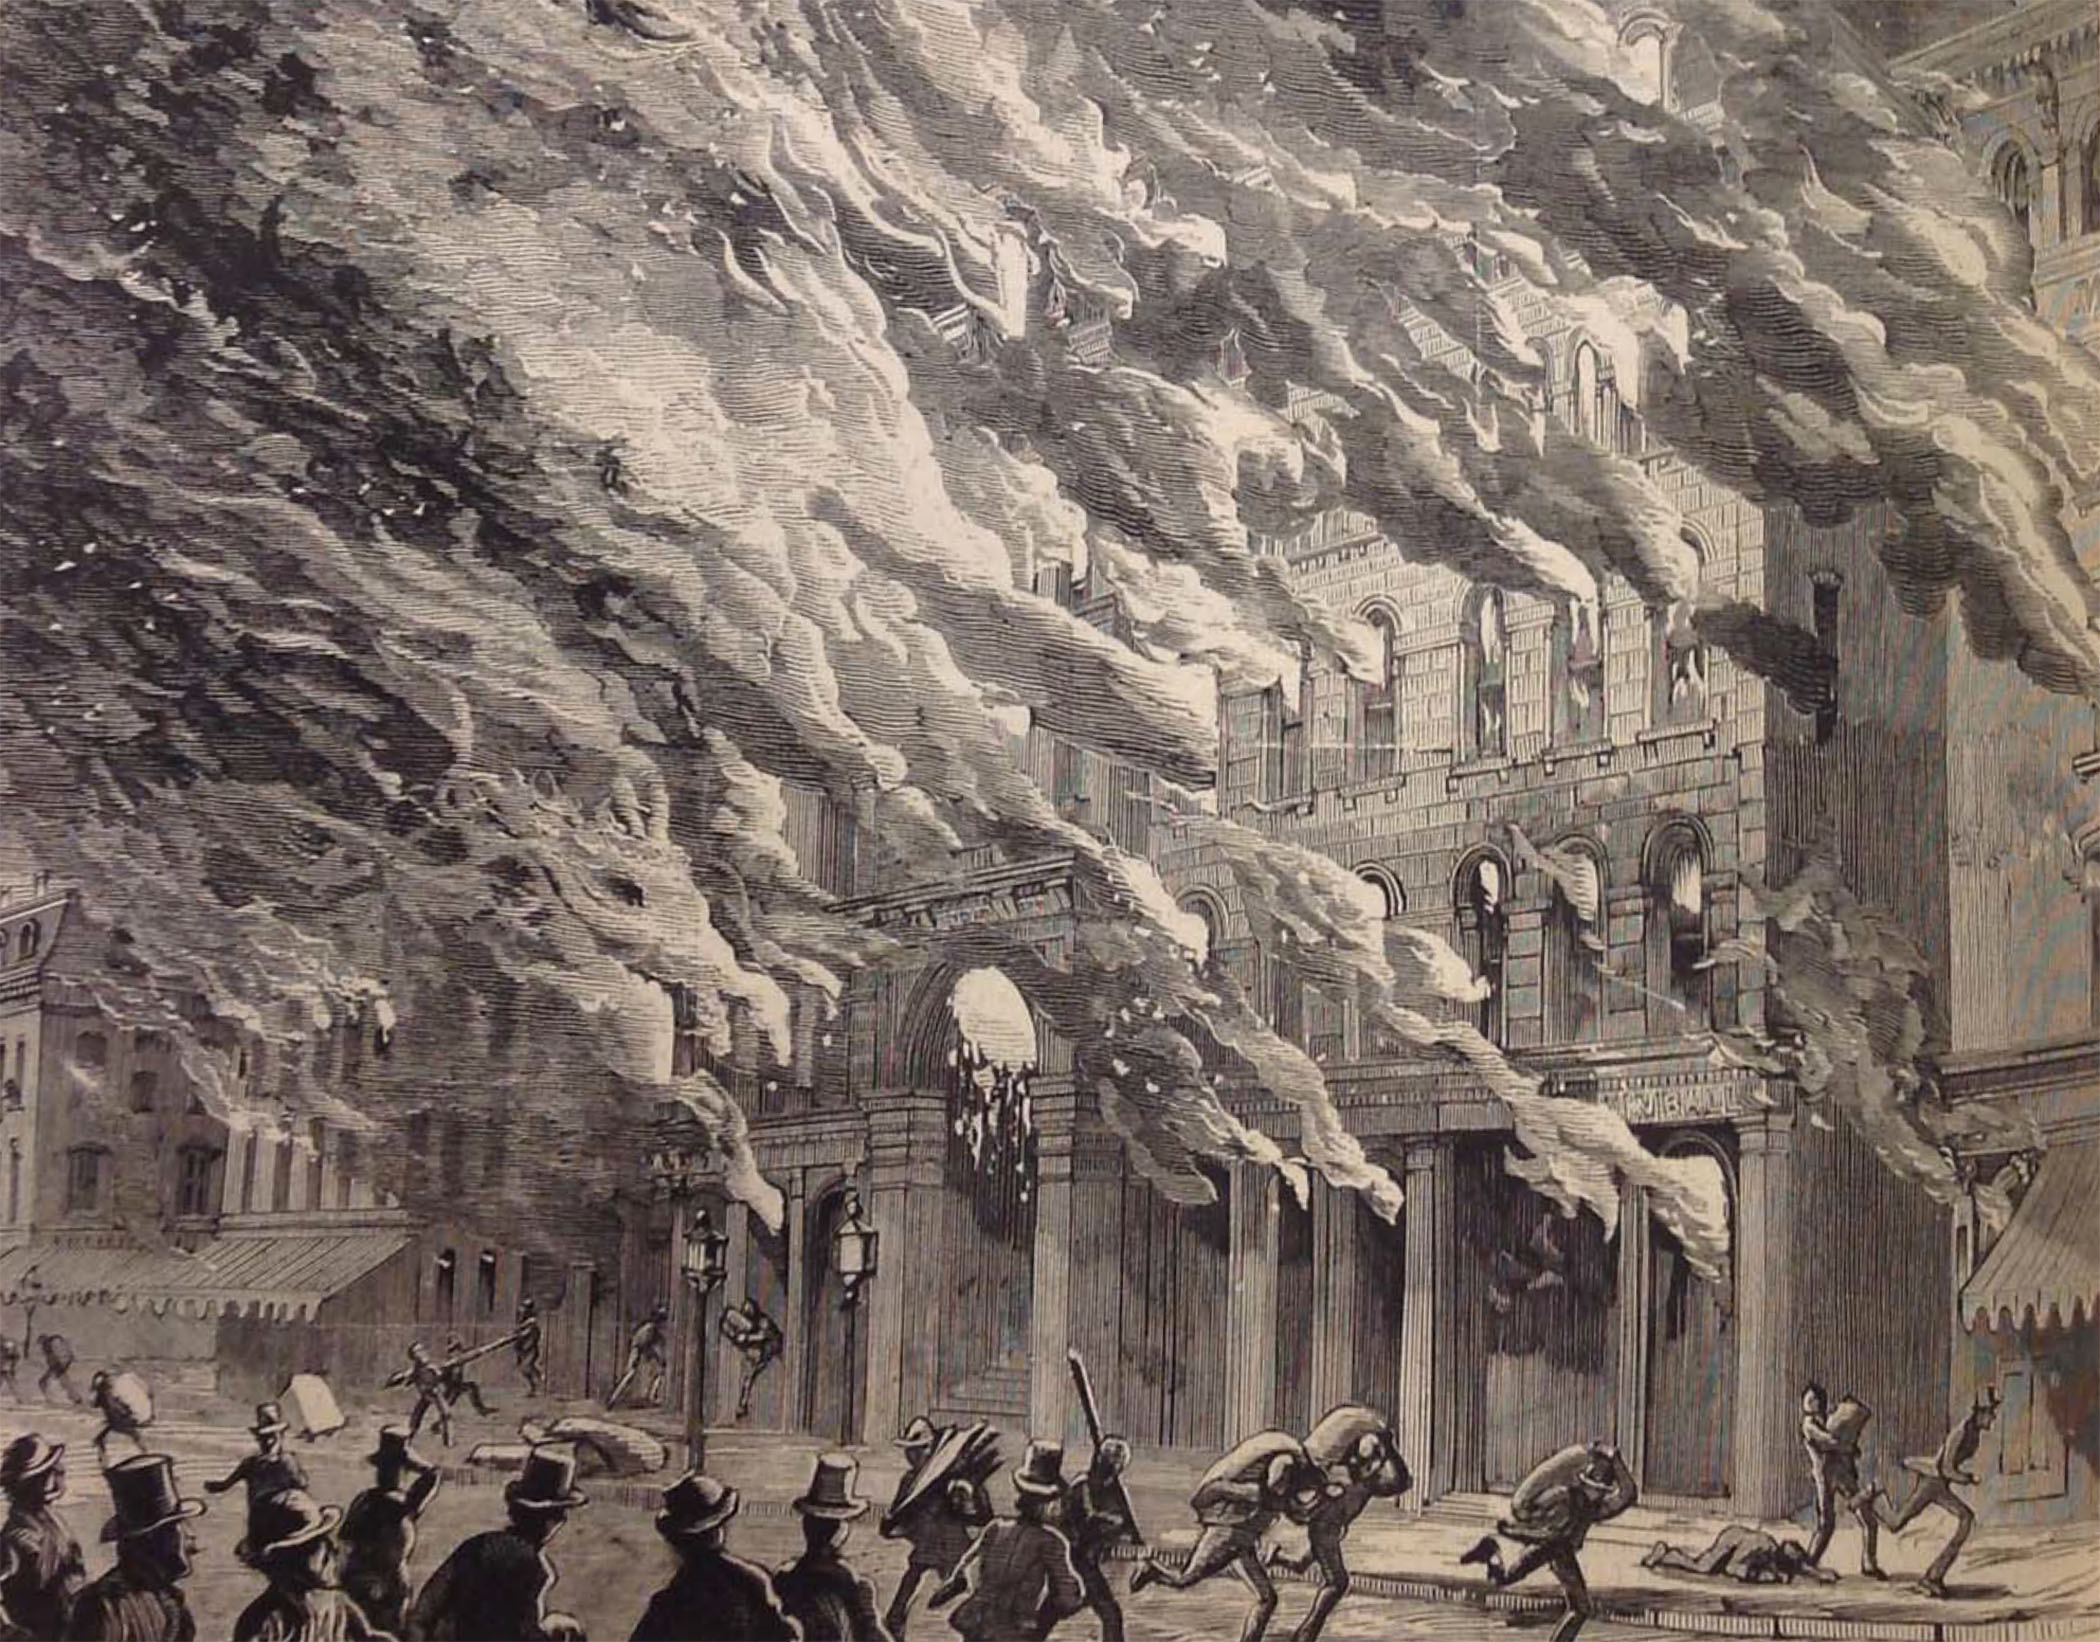 Illustration of the burning of Crosby's Opera House, 1871.